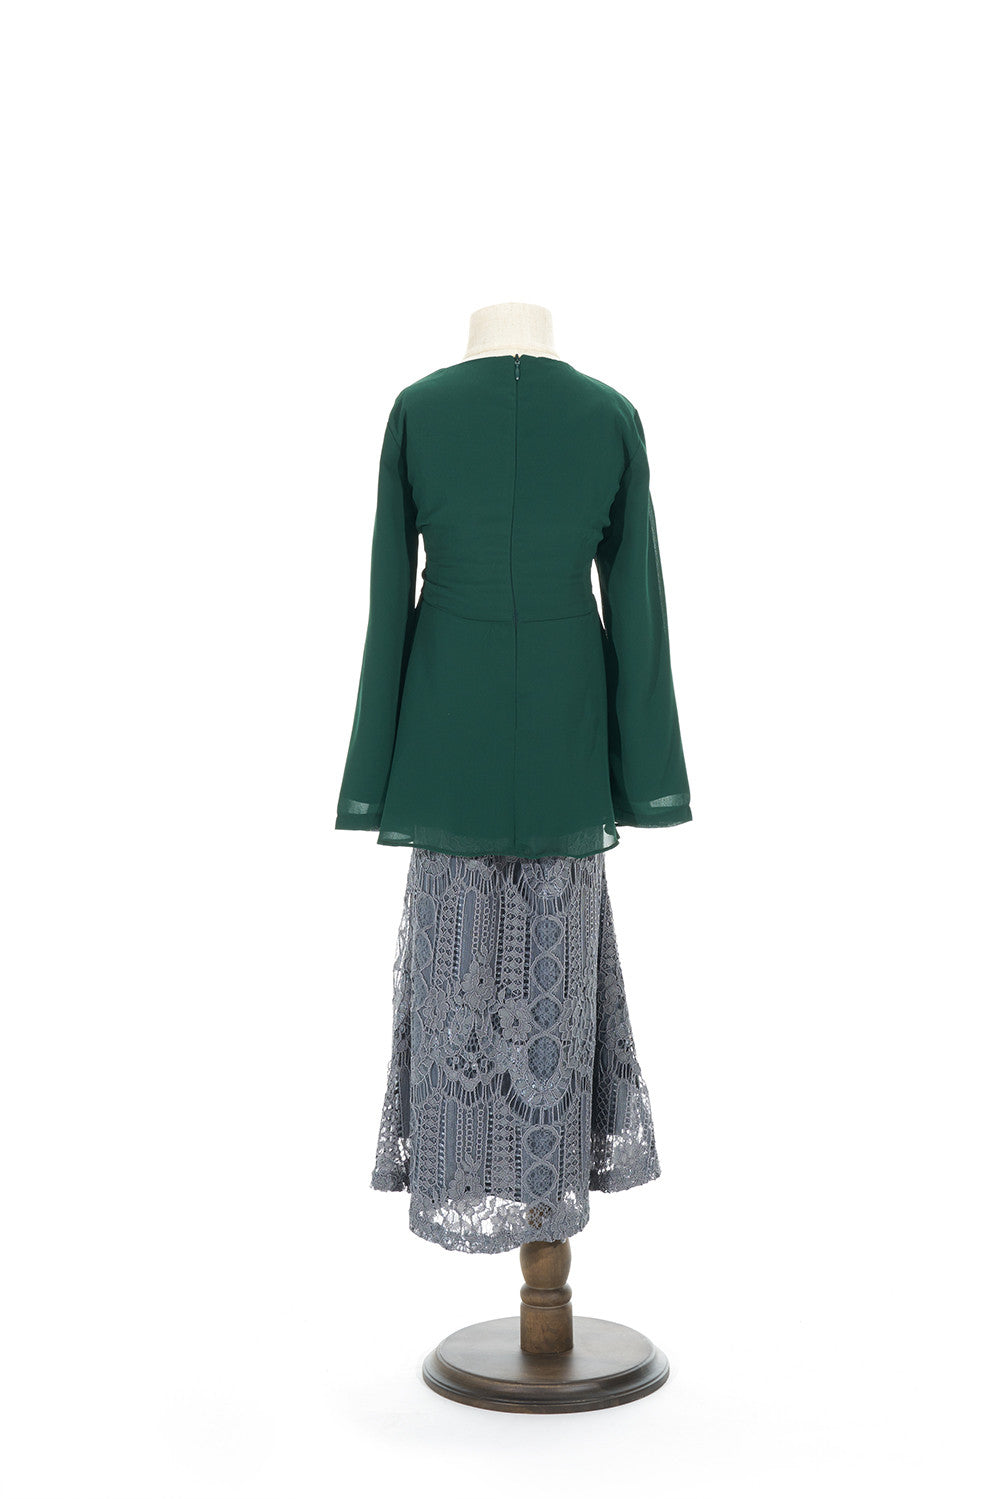 Petite Peplum Top with Venetian Lace Skirt in Emerald Green